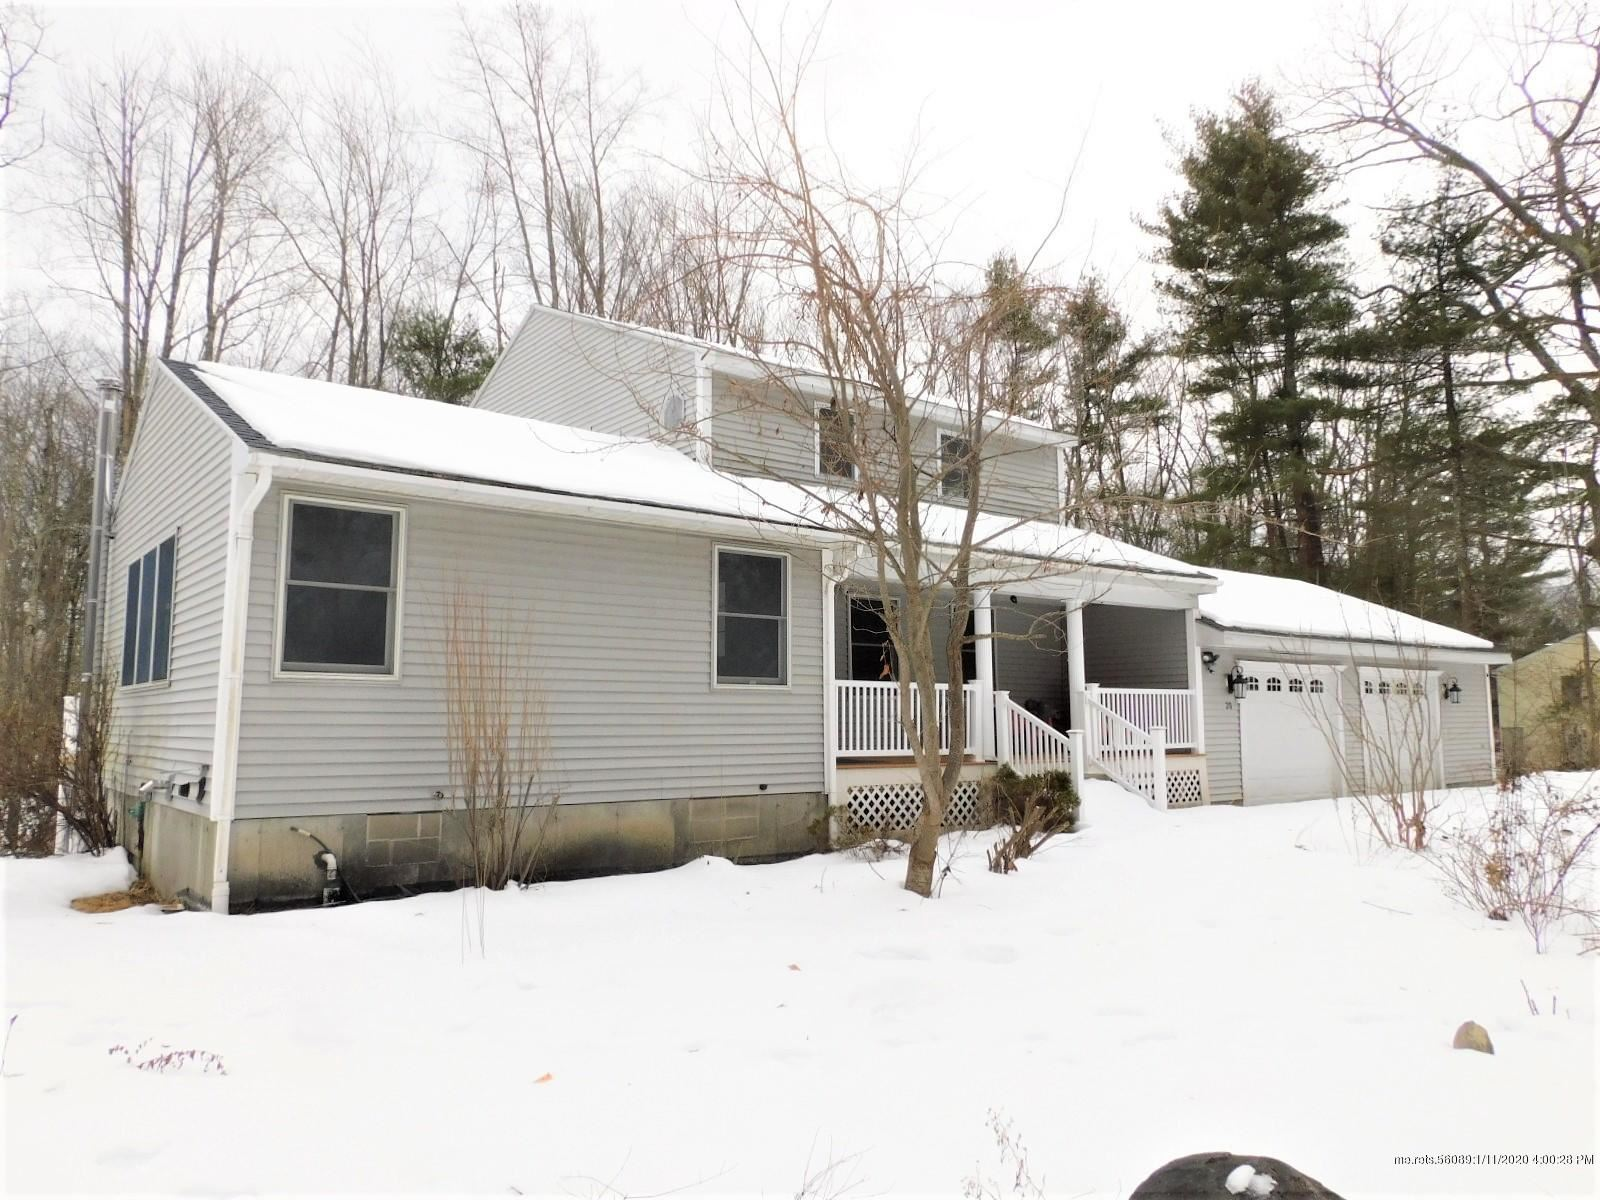 Photo of 20 Lewis Avenue, Old Orchard Beach, ME 04064 (MLS # 1352641)